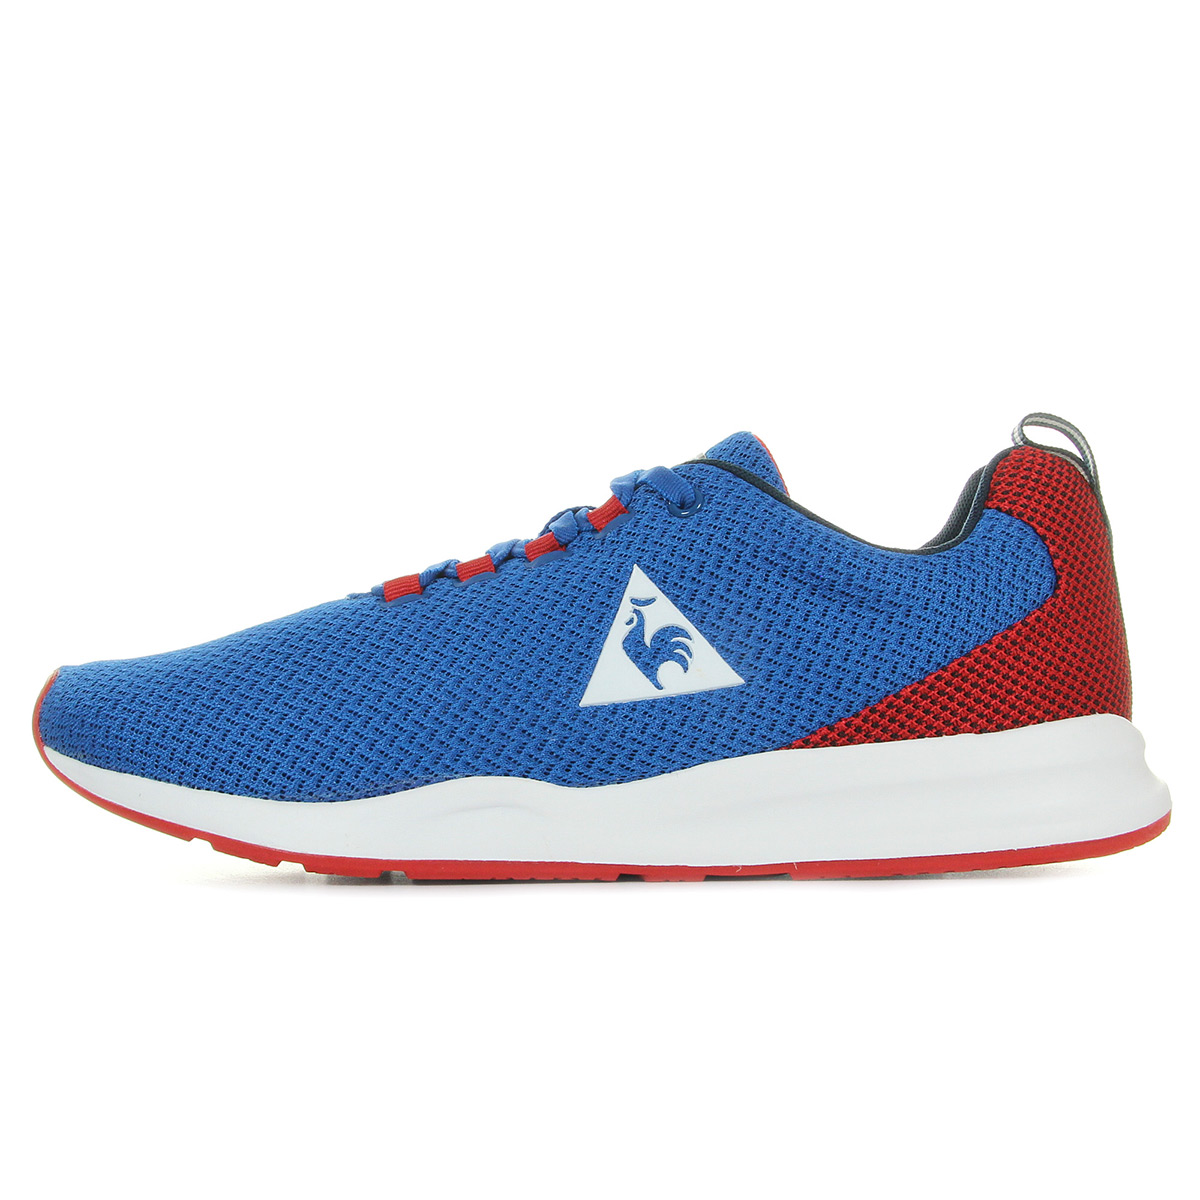 Le Coq Sportif Techracer Engineered Mesh 1720351, Baskets mode homme